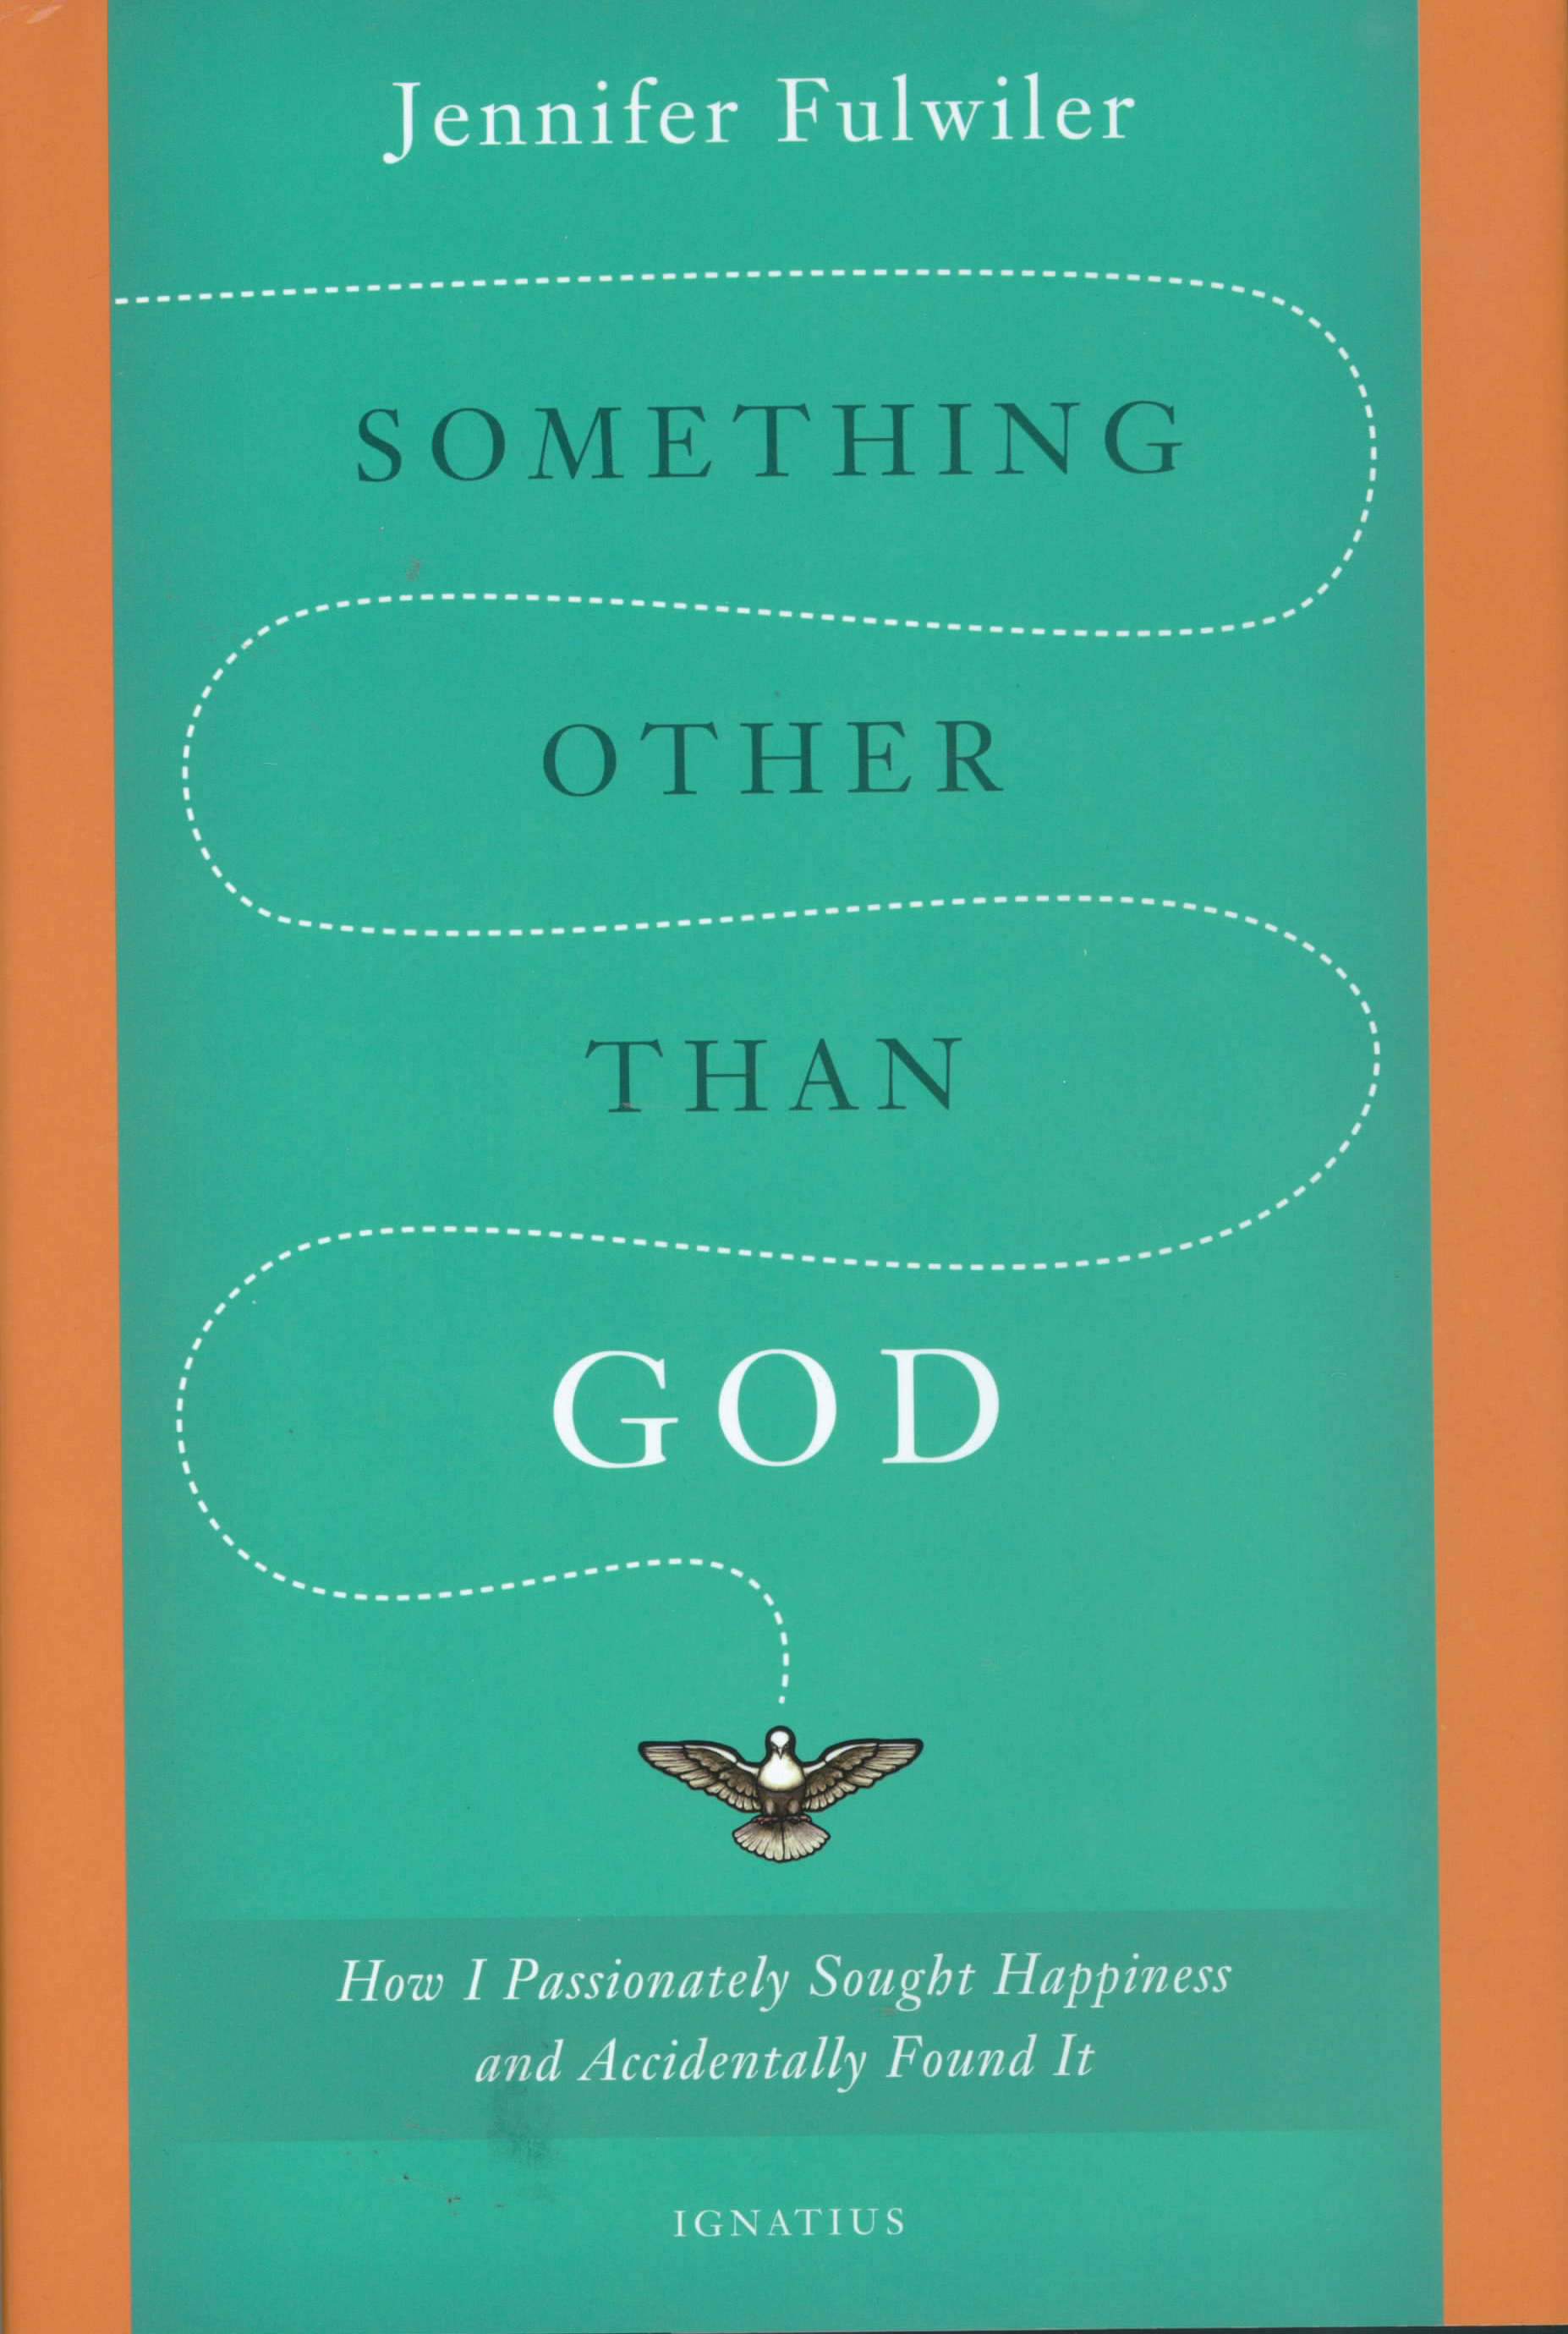 Something Other Than God: How I Passionately Sought Happiness and Accidentally Found It by Jennifer Fulwiler 108-9781586178826